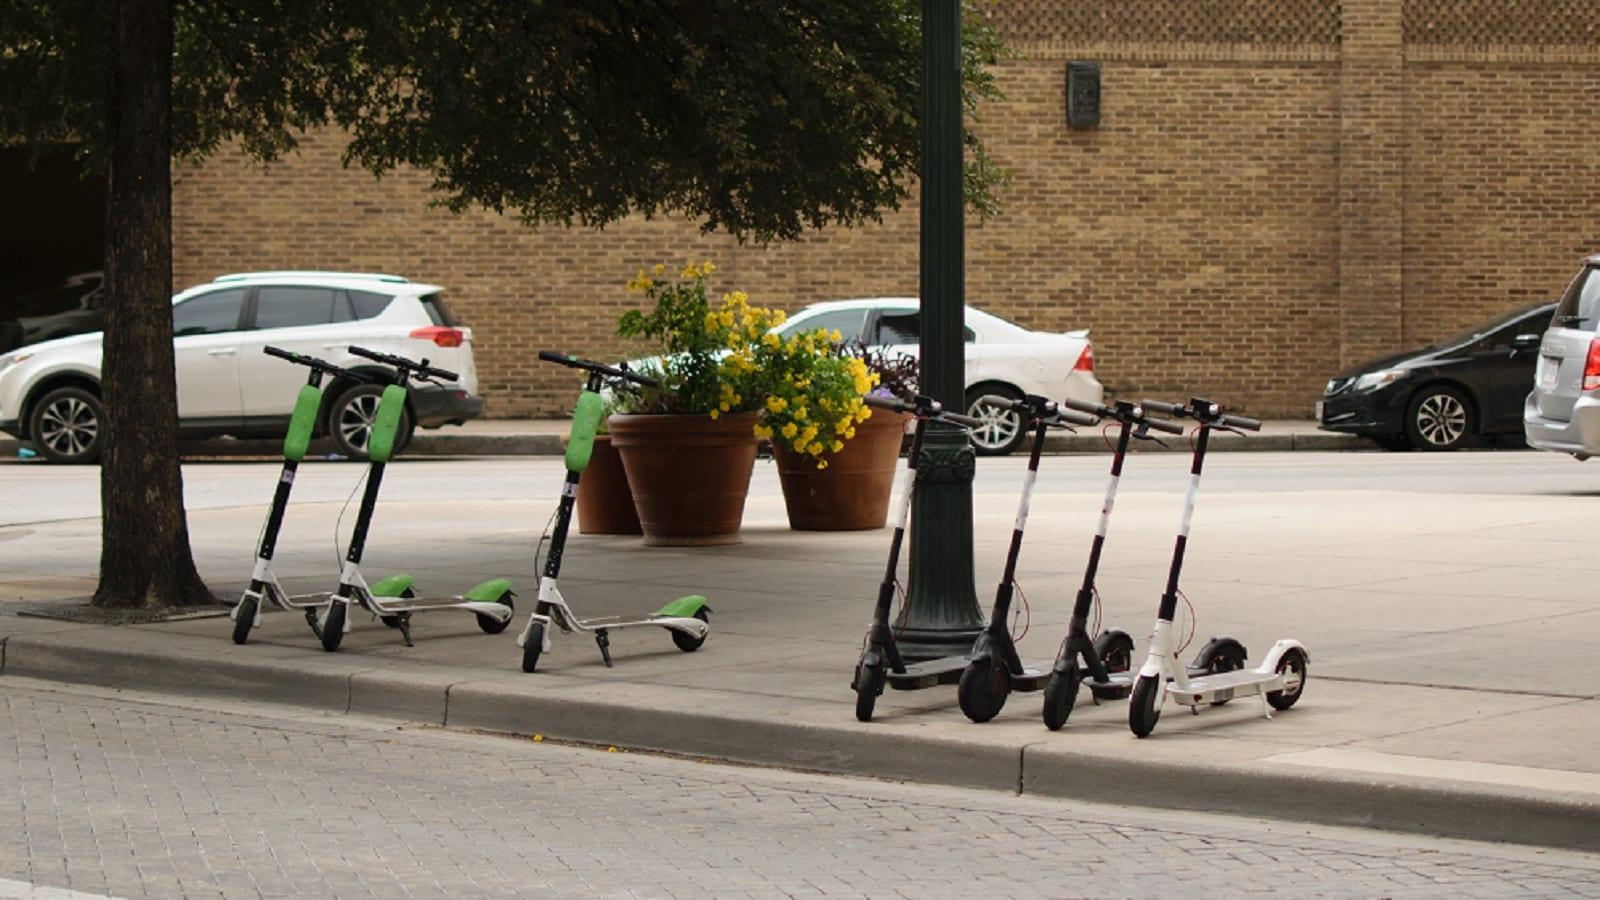 Parked Electric Bird Scooters Stock Photo